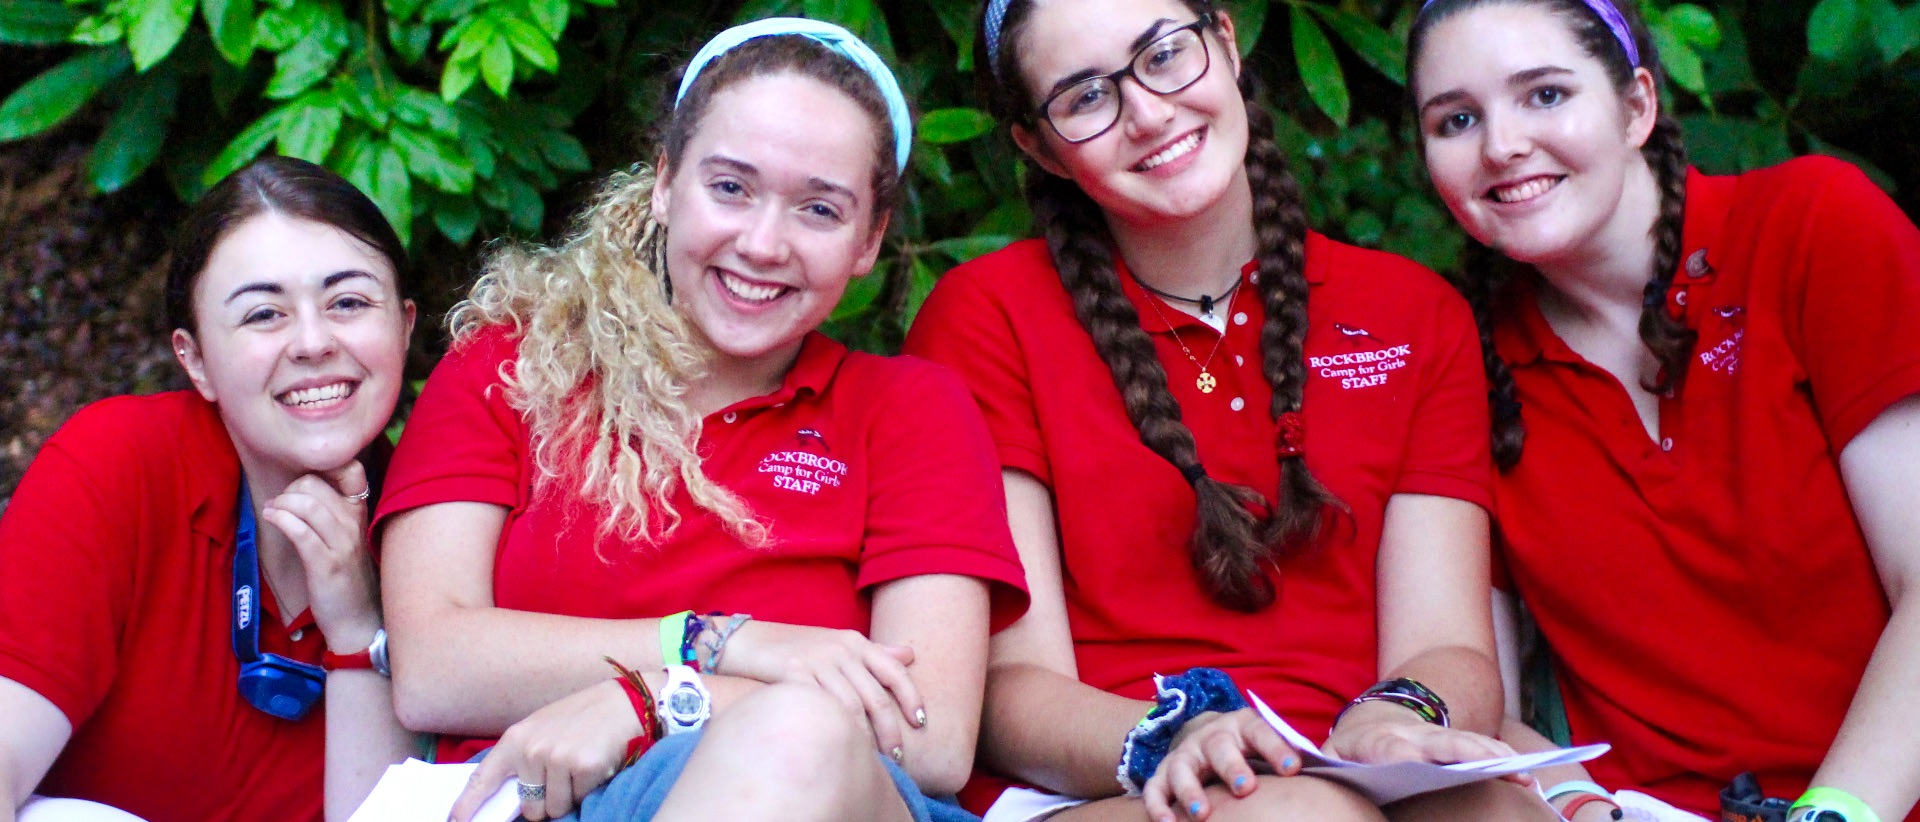 female camp counselors in uniform